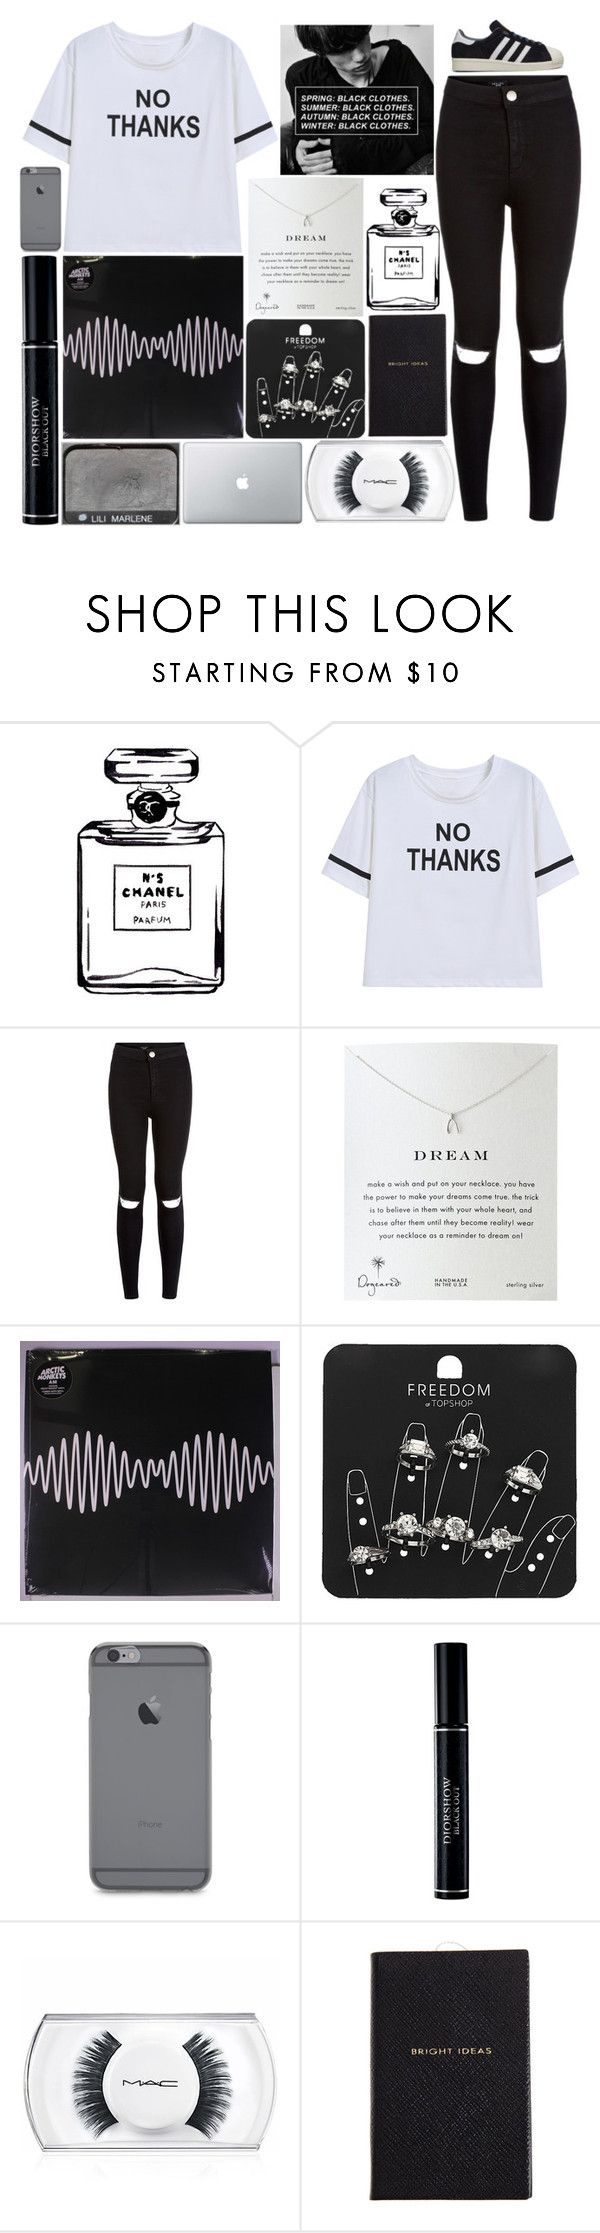 """100 Day Challenge: Day 43-Q&A video"" by piksist ❤ liked on Polyvore featuring Chanel, NARS Cosmetics, Dogeared, Topshop, Christian Dior, MAC Cosmetics, Smythson and adidas"